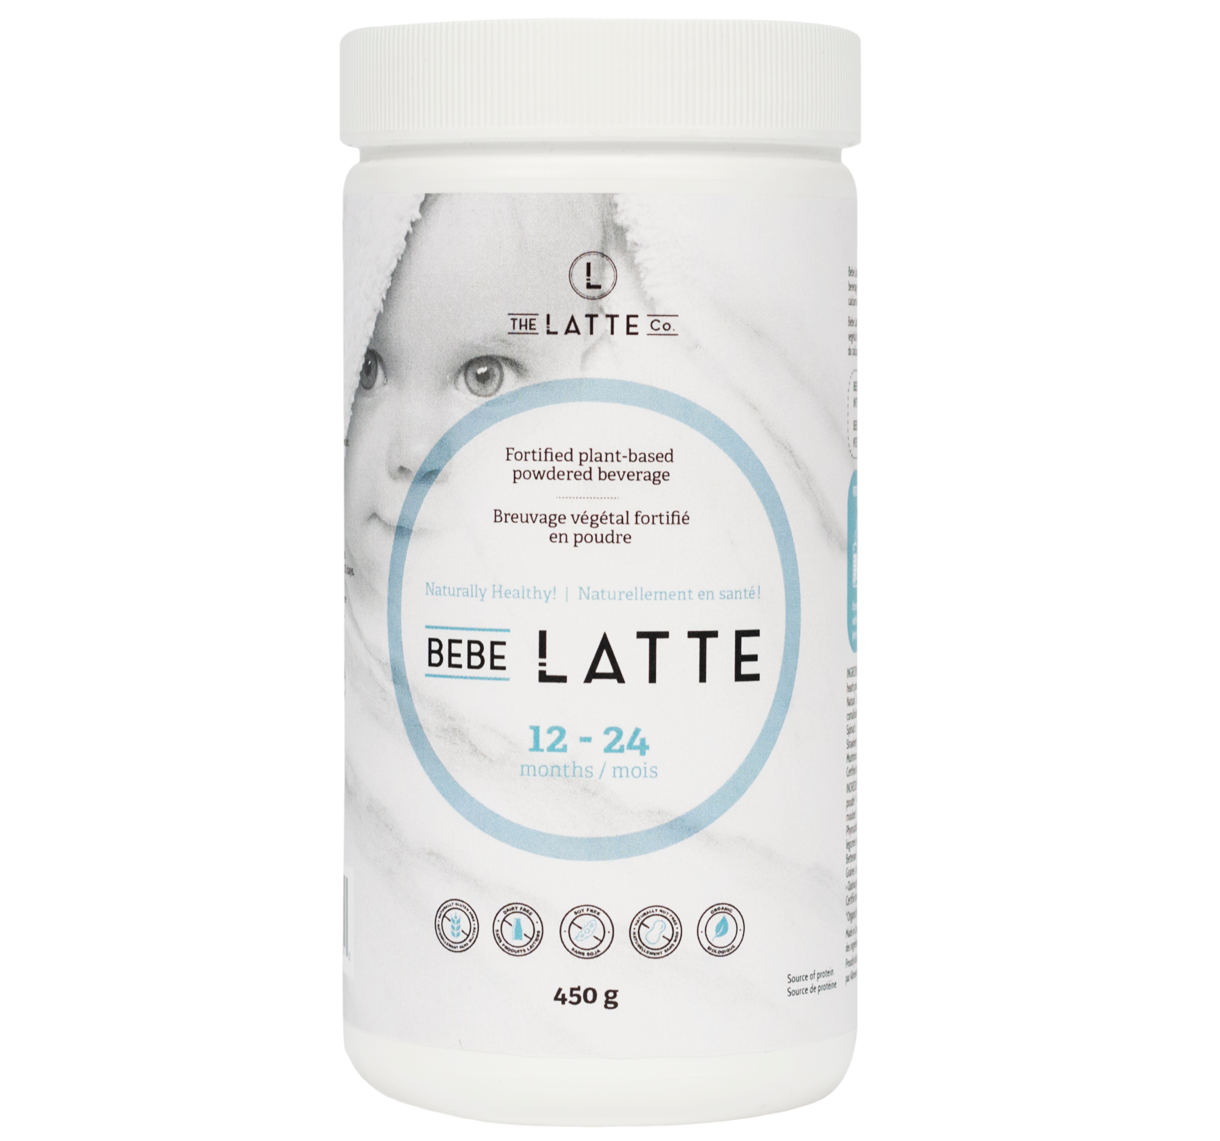 Bottle of Bebe Latte